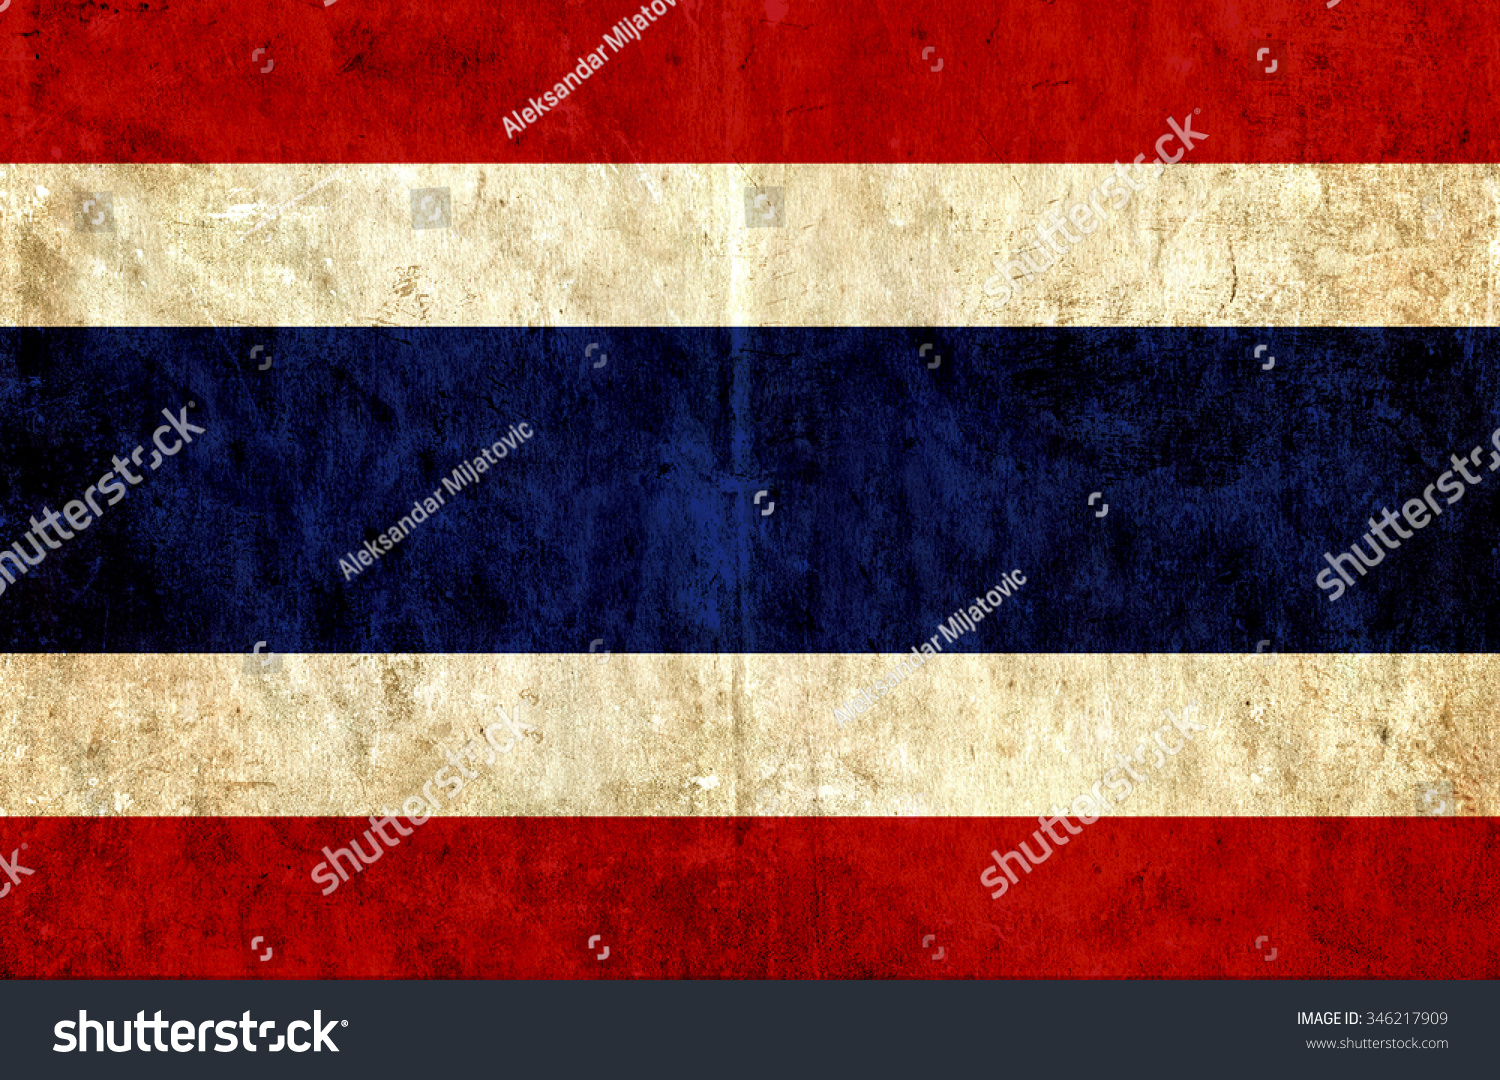 Royalty Free Stock Illustration of Grungy Paper Flag Thailand Stock